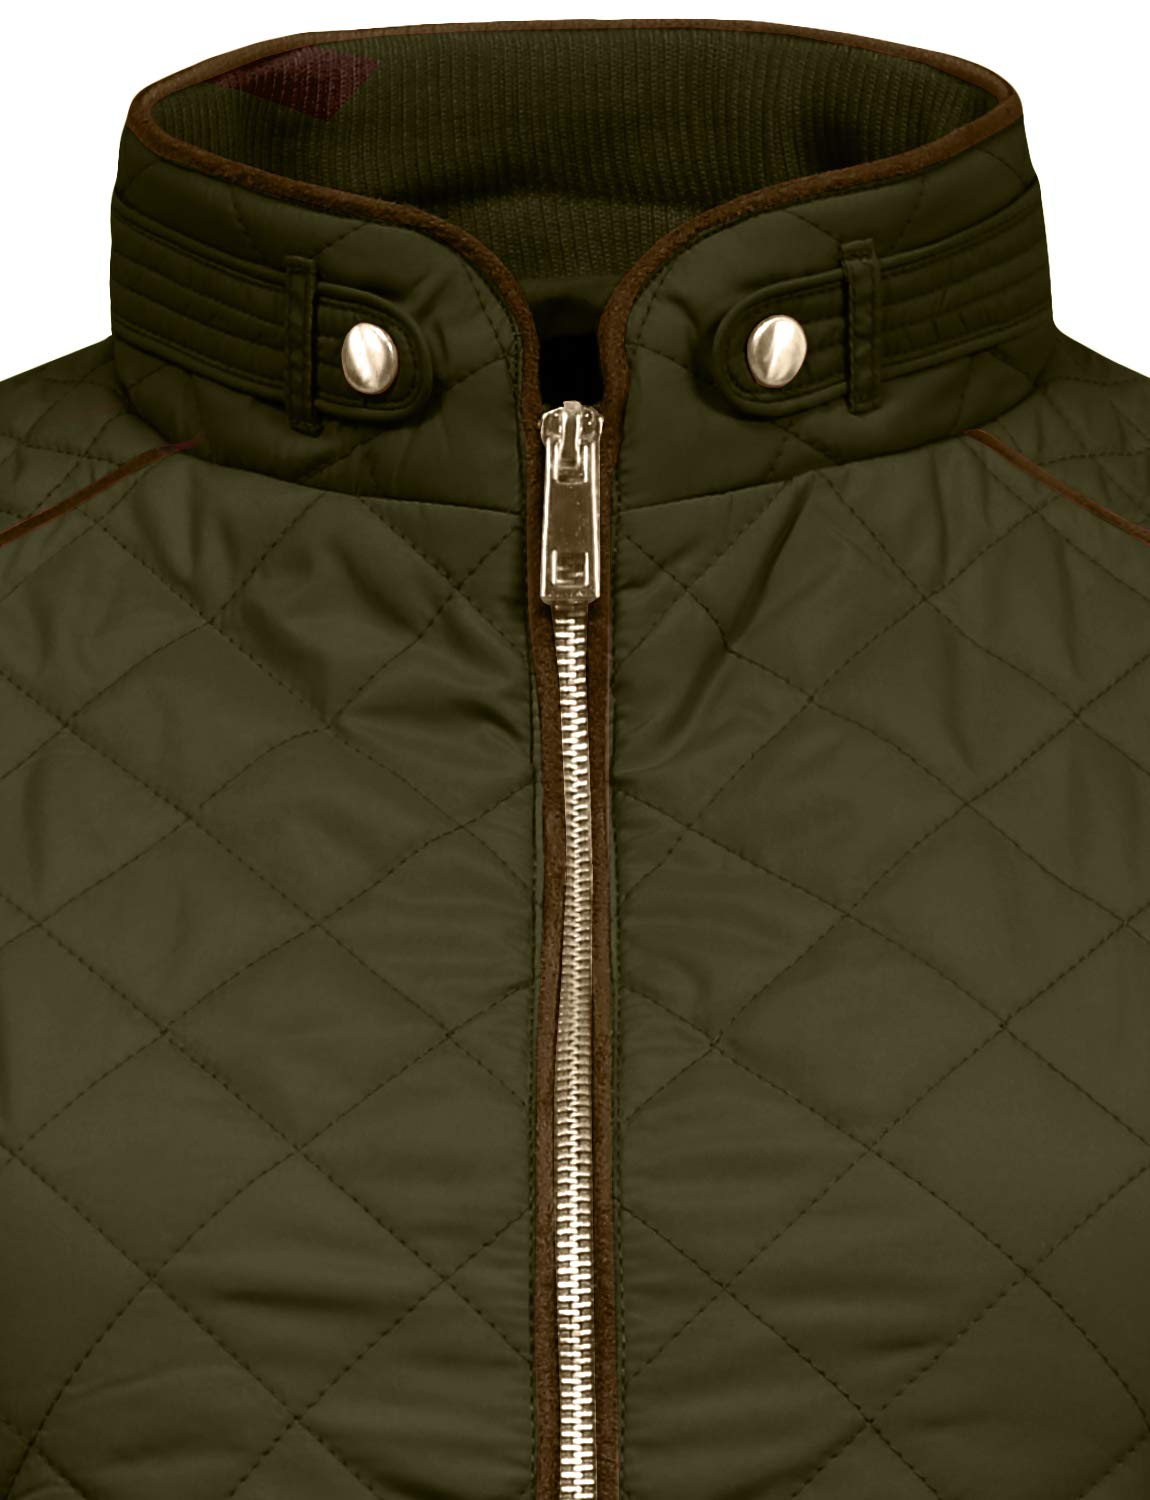 J. LOVNY Womens Lightweight Quilted Warm Zip Jacket/Vest with Pocket Details by J. LOVNY (Image #4)